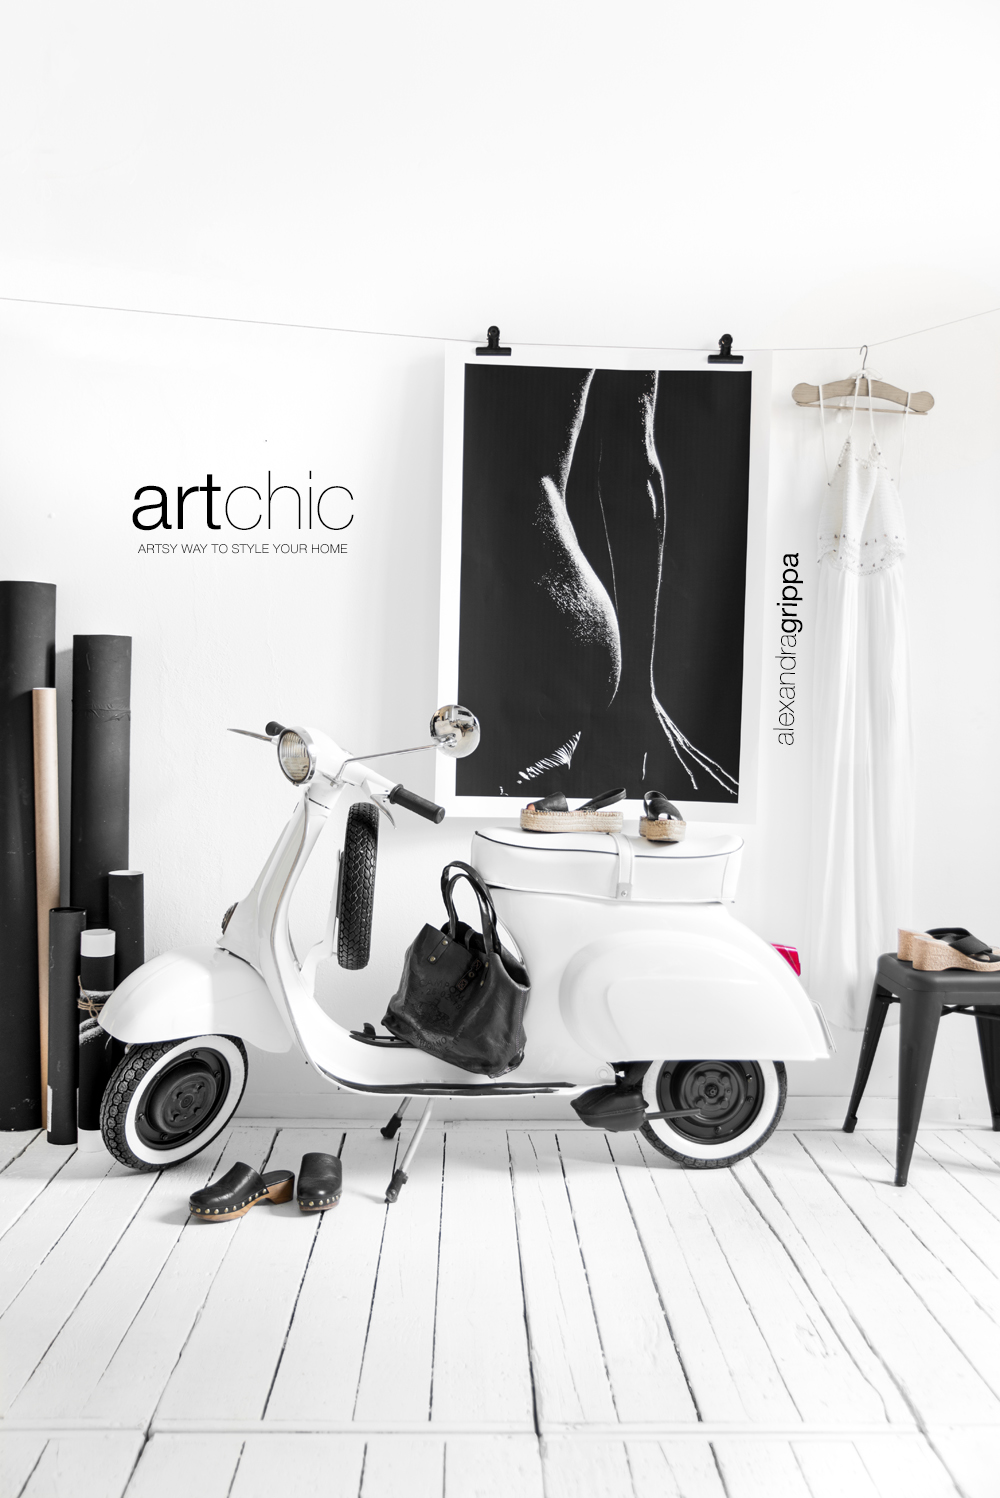 ARTCHIC - ARTSY WAY TO STYLE YOUR HOME